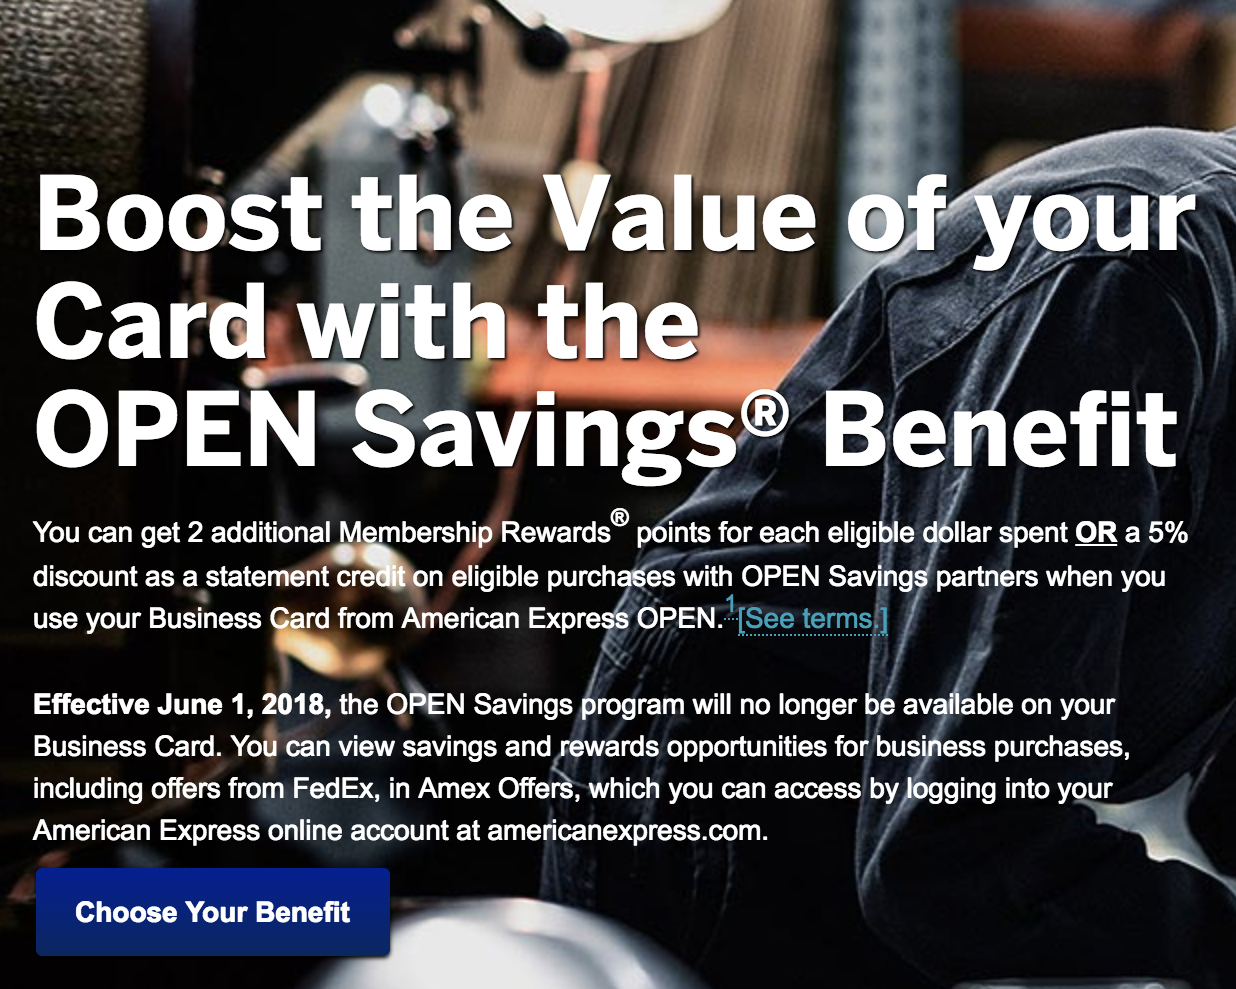 Amex Ends OPEN Savings Program (June 1, 2018) - AwardWallet Blog